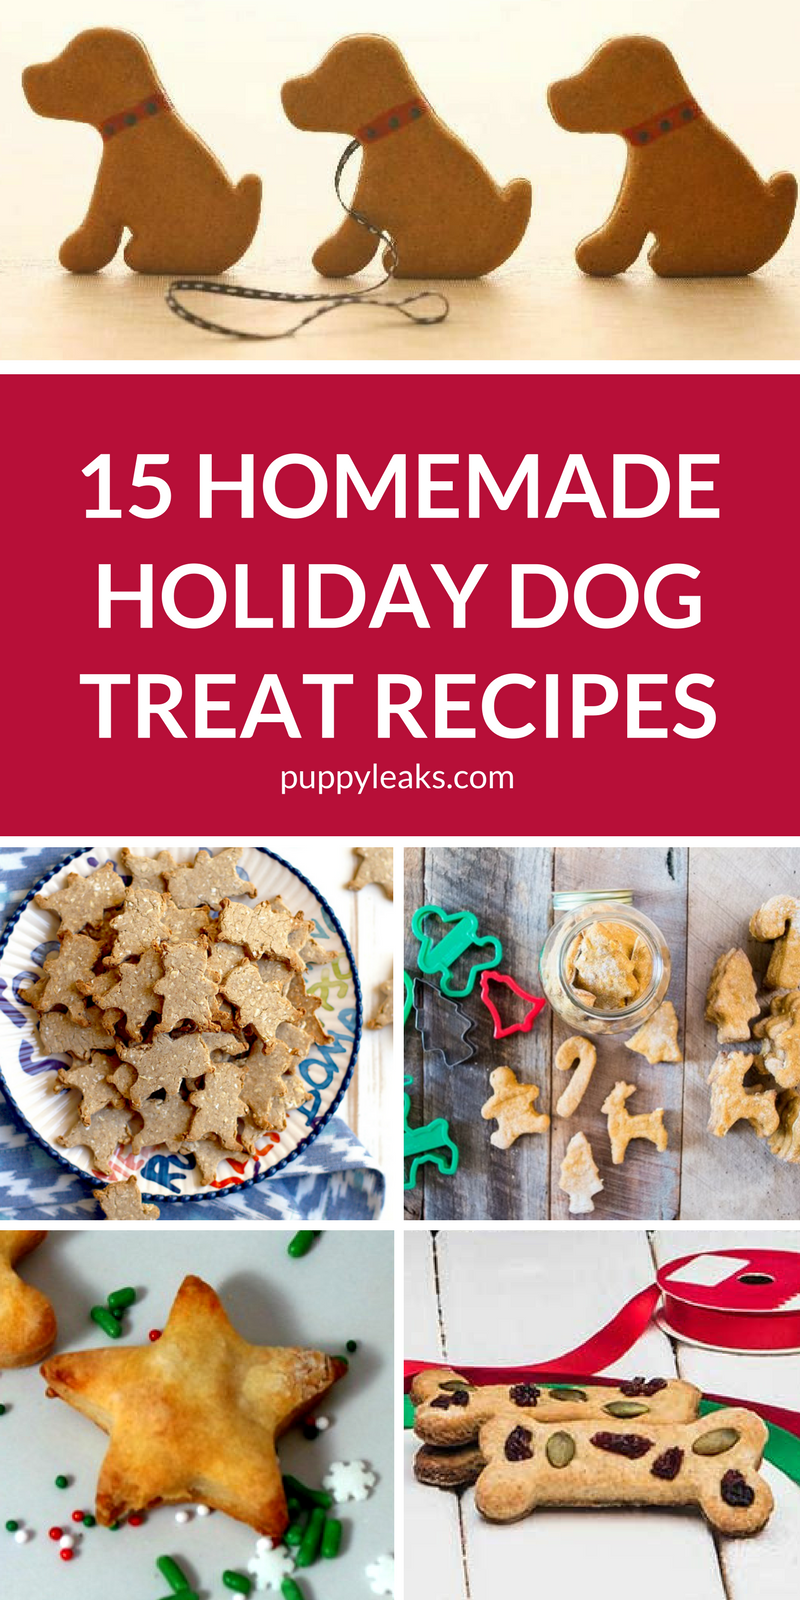 15 Homemade Holiday Dog Treat Recipes. Looking for something special to give your dog for the holidays? Make them one of these Christmas themed dog treat recipes. #dogs #dogtreats #dogdiy #dogtreatrecipes